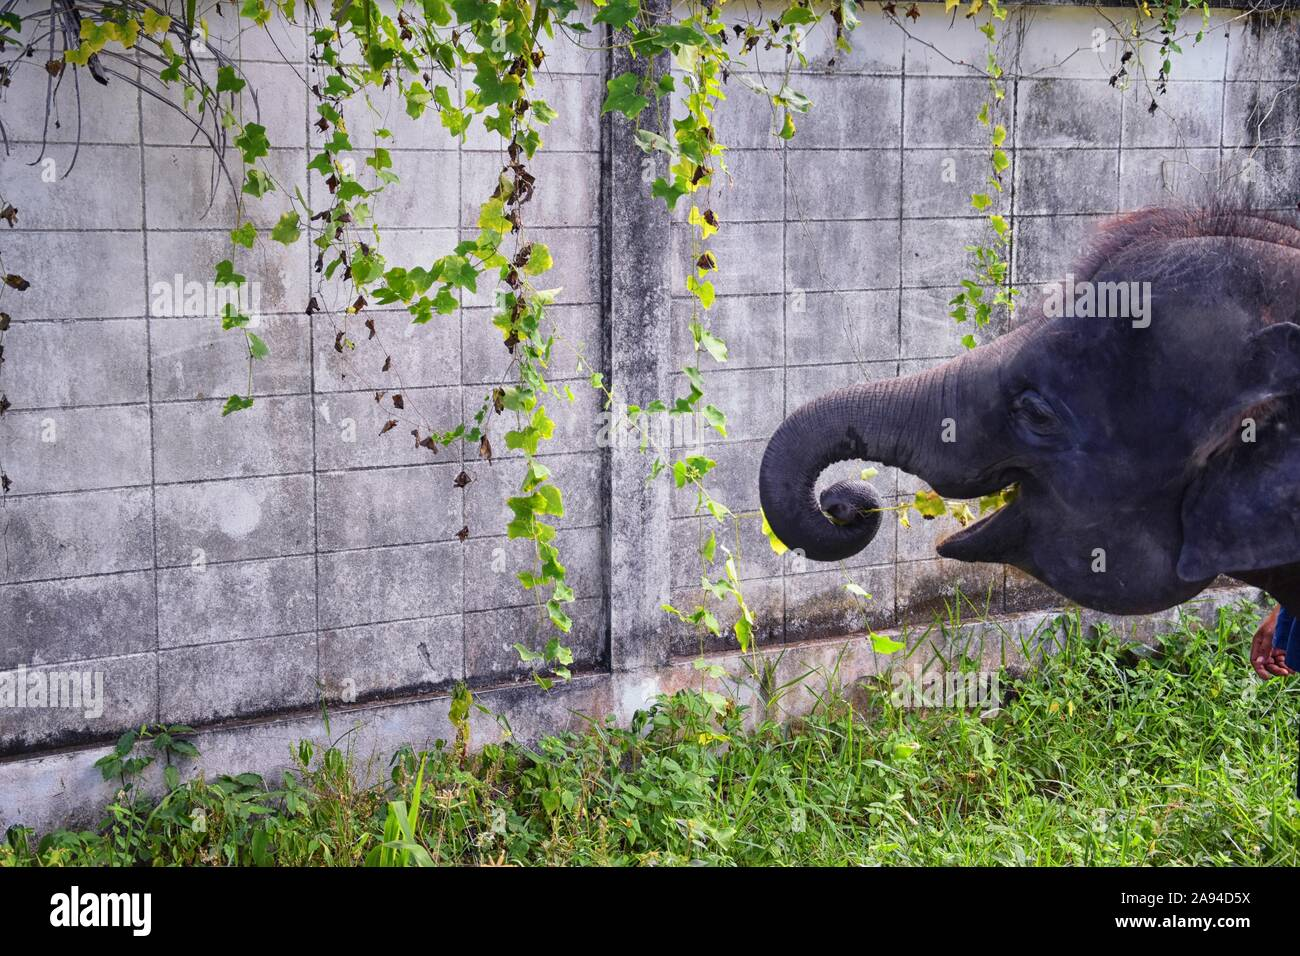 Baby elephant, Elephas maximus, rescued, healing to be reintroduced into the wild, close up view in protected park, Herbivorous animal in Phuket, Thai Stock Photo